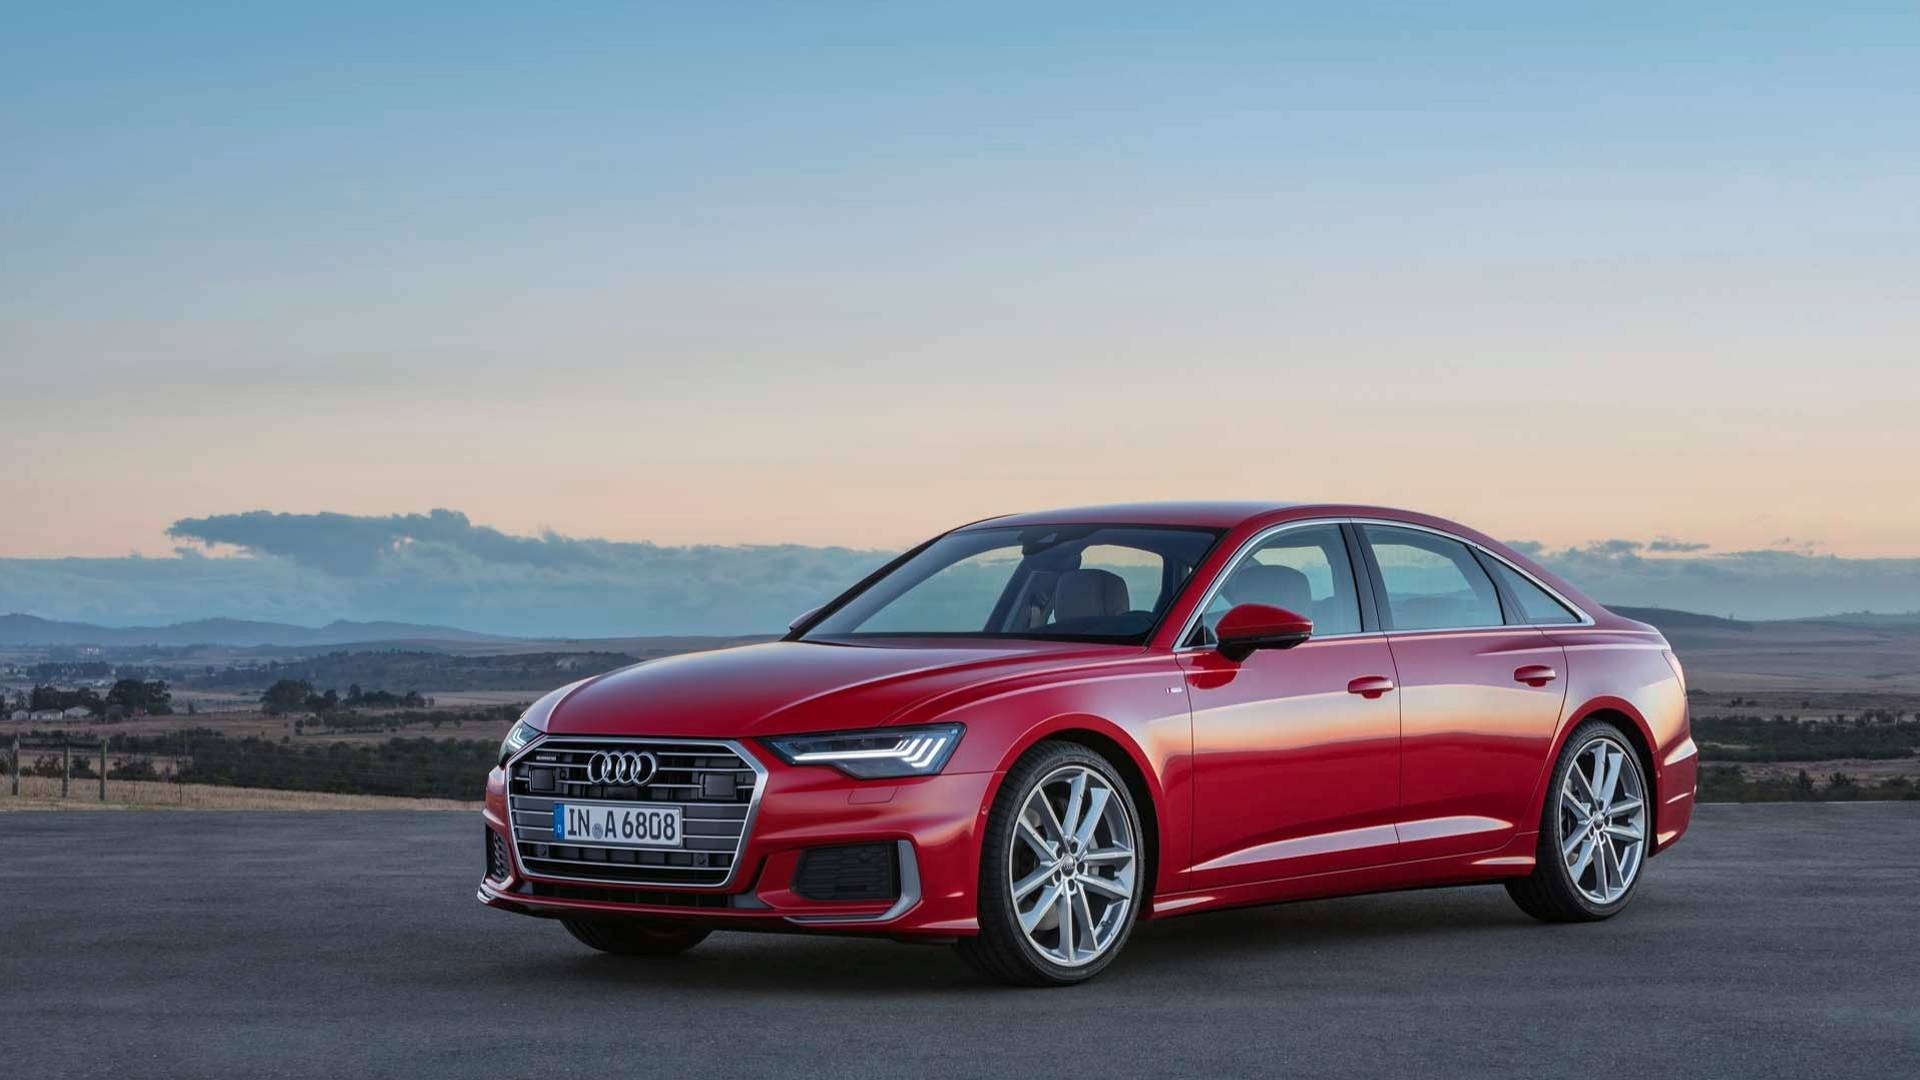 2019 Audi A6 Starts At 58 900 Offers Tons Of Tech On Higher Grades